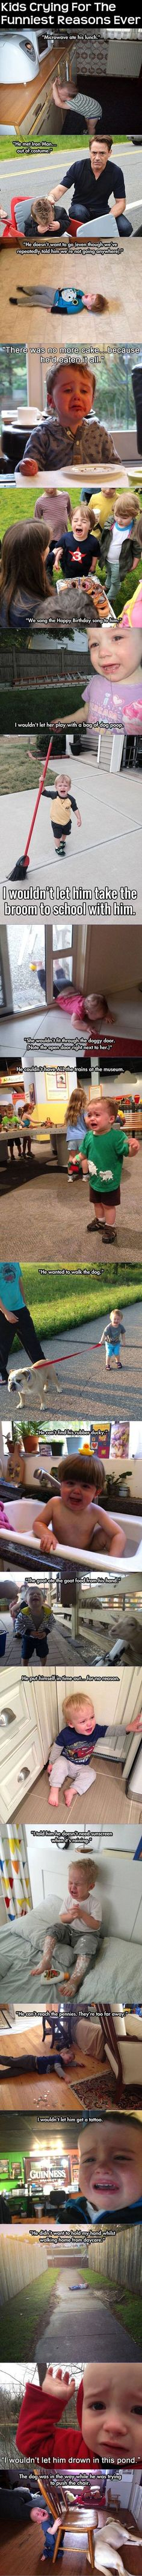 Kids Crying For The Funniest Reasons Ever funny kids parents lol children humor funny pictures funny kids hysterical… http://ibeebz.com